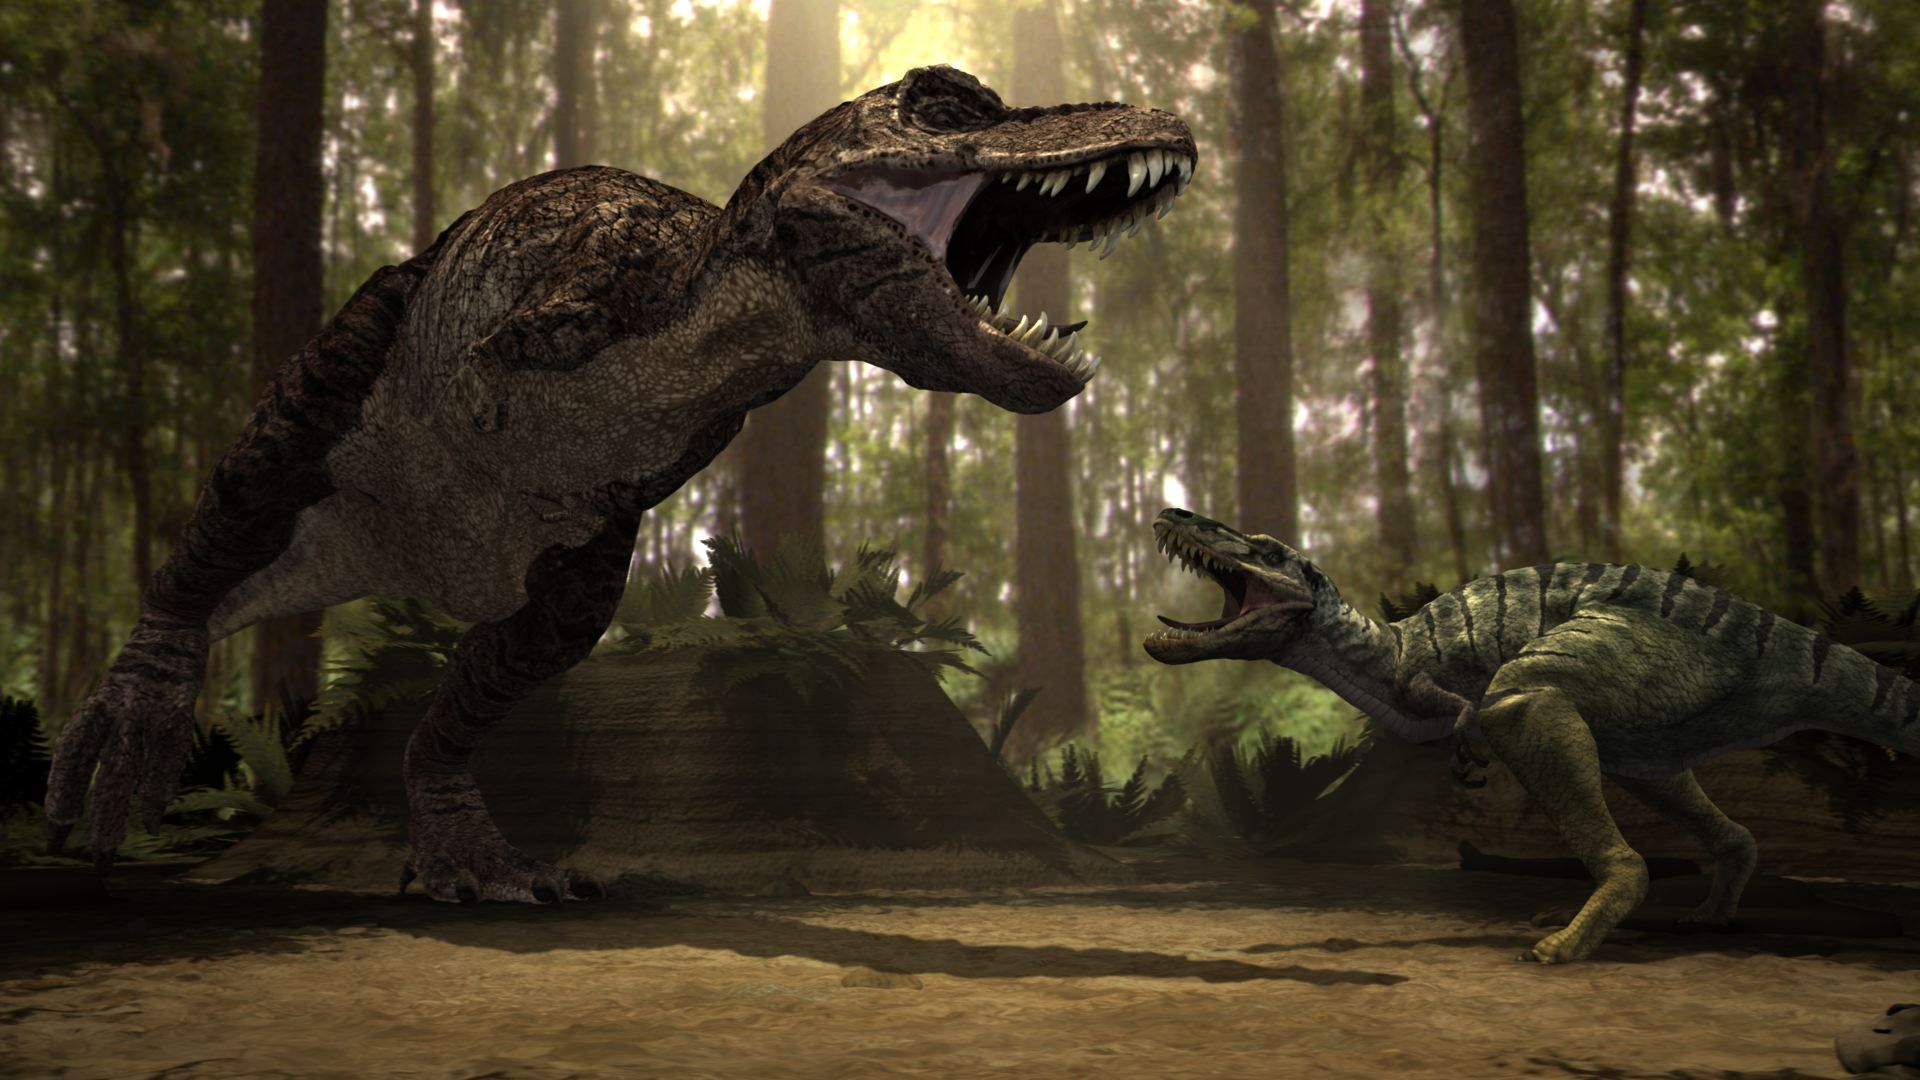 dinosaurs dinosaurs fighting picture dinosaurs pinterest